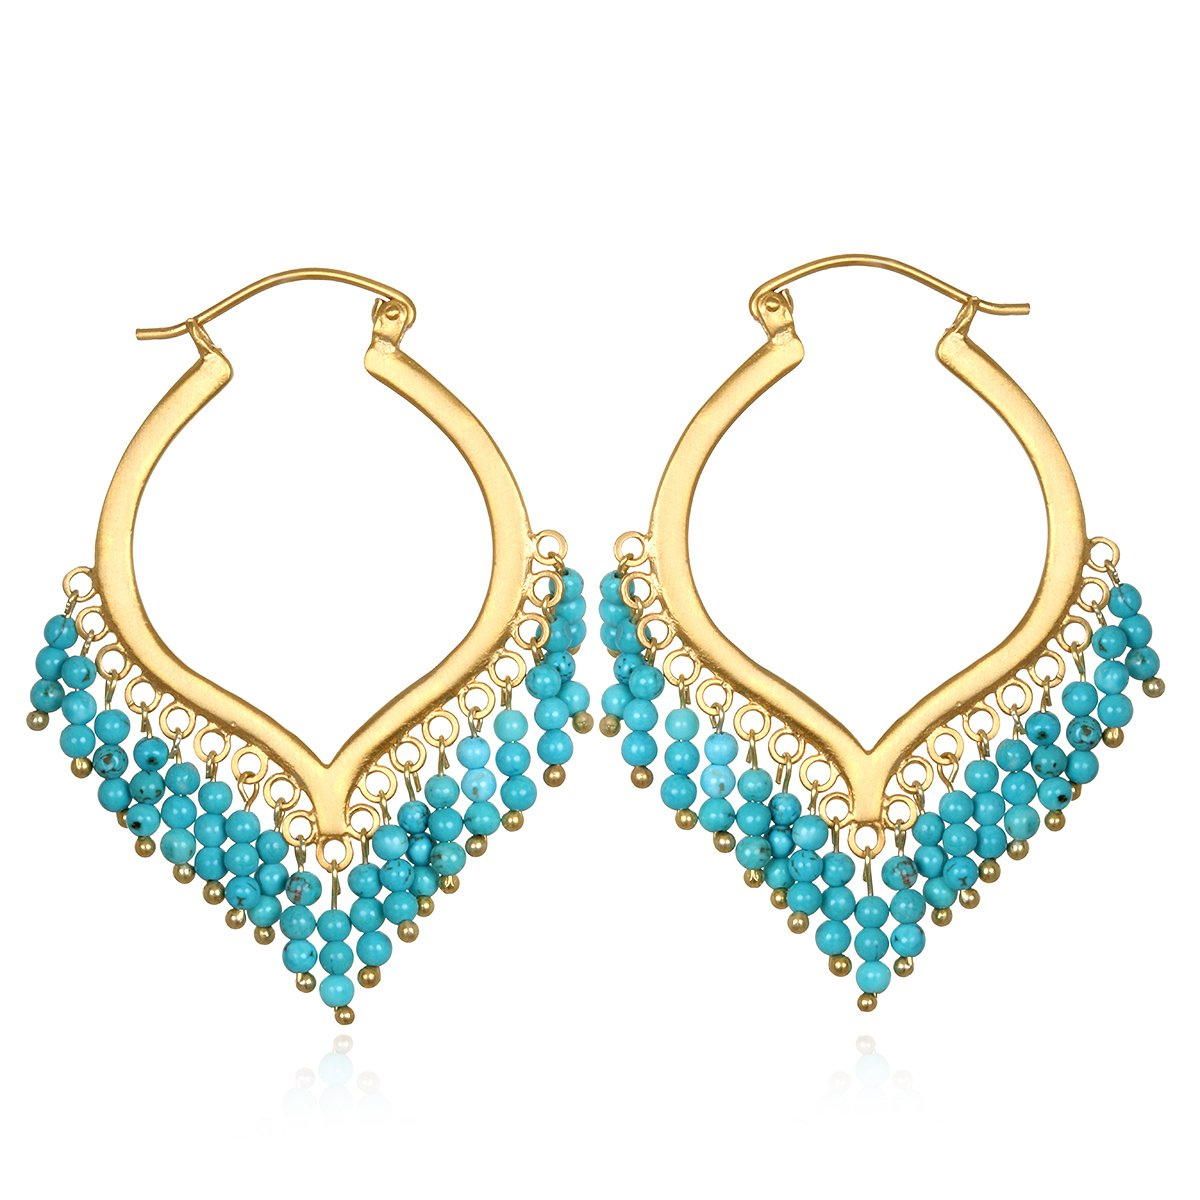 Satya Jewelry Turquoise Gold Plate Chandelier Hoop Earrings